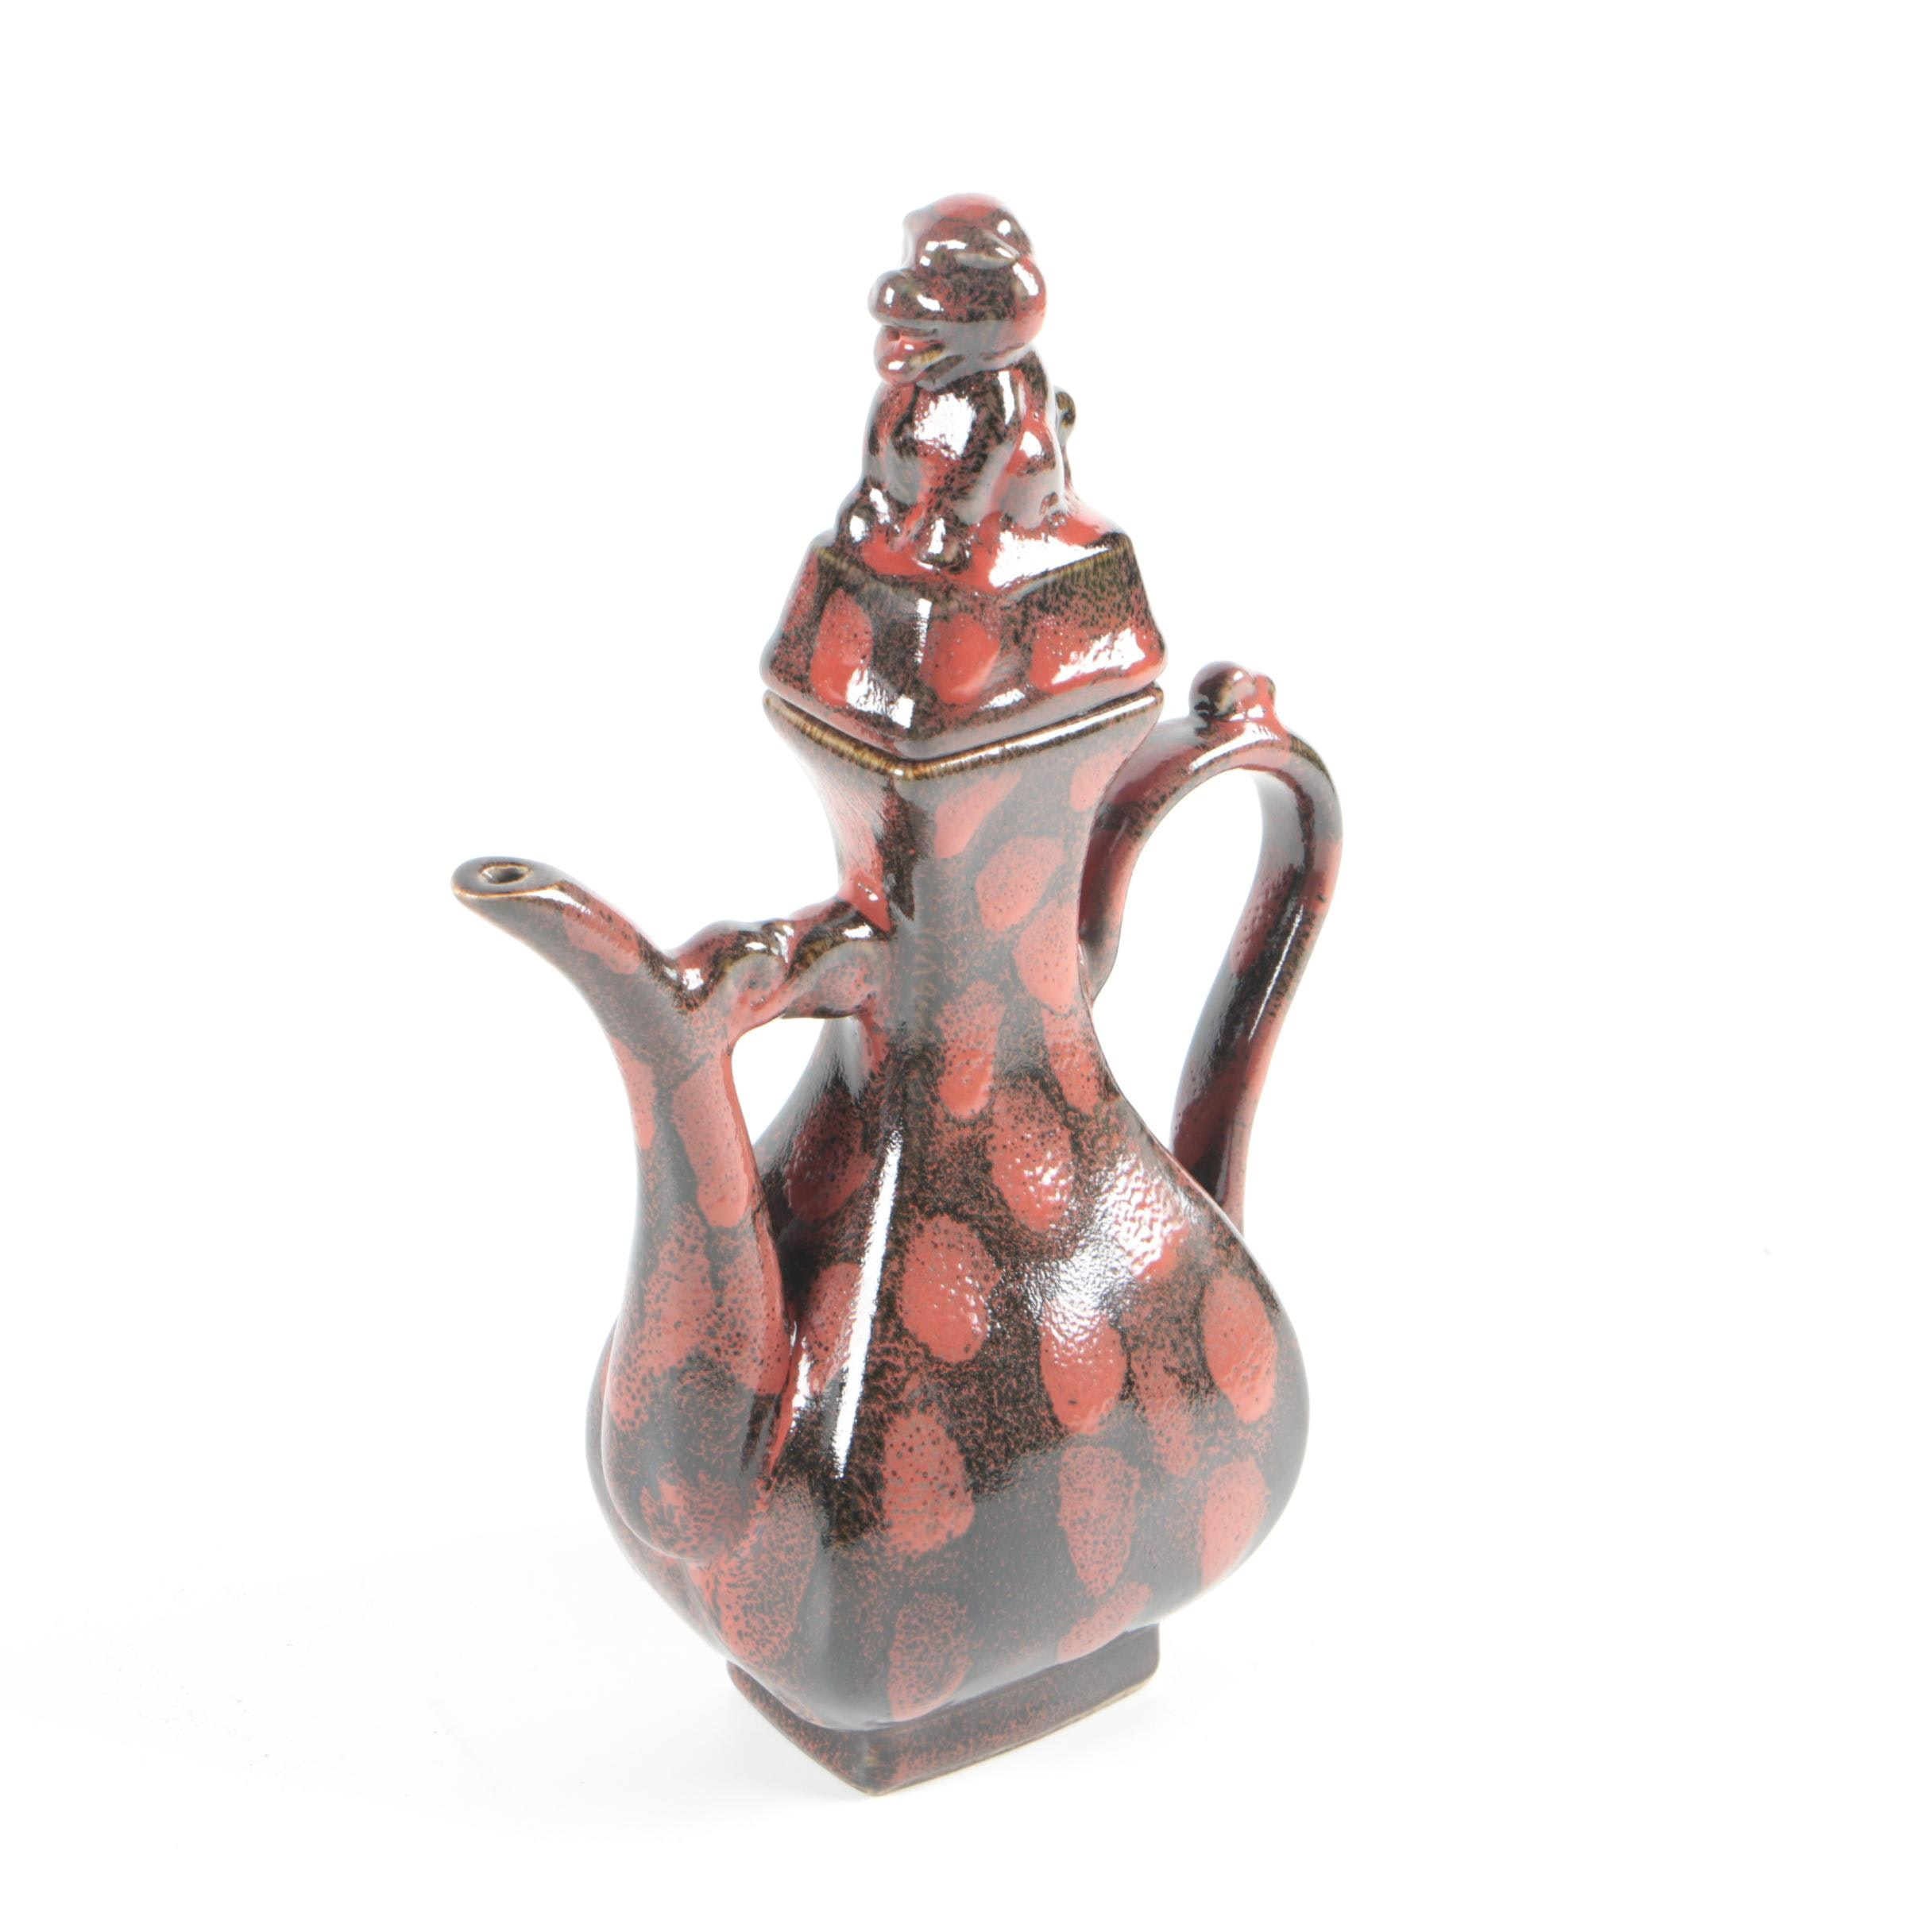 Chinese Teapot with Guardian Lion Finial